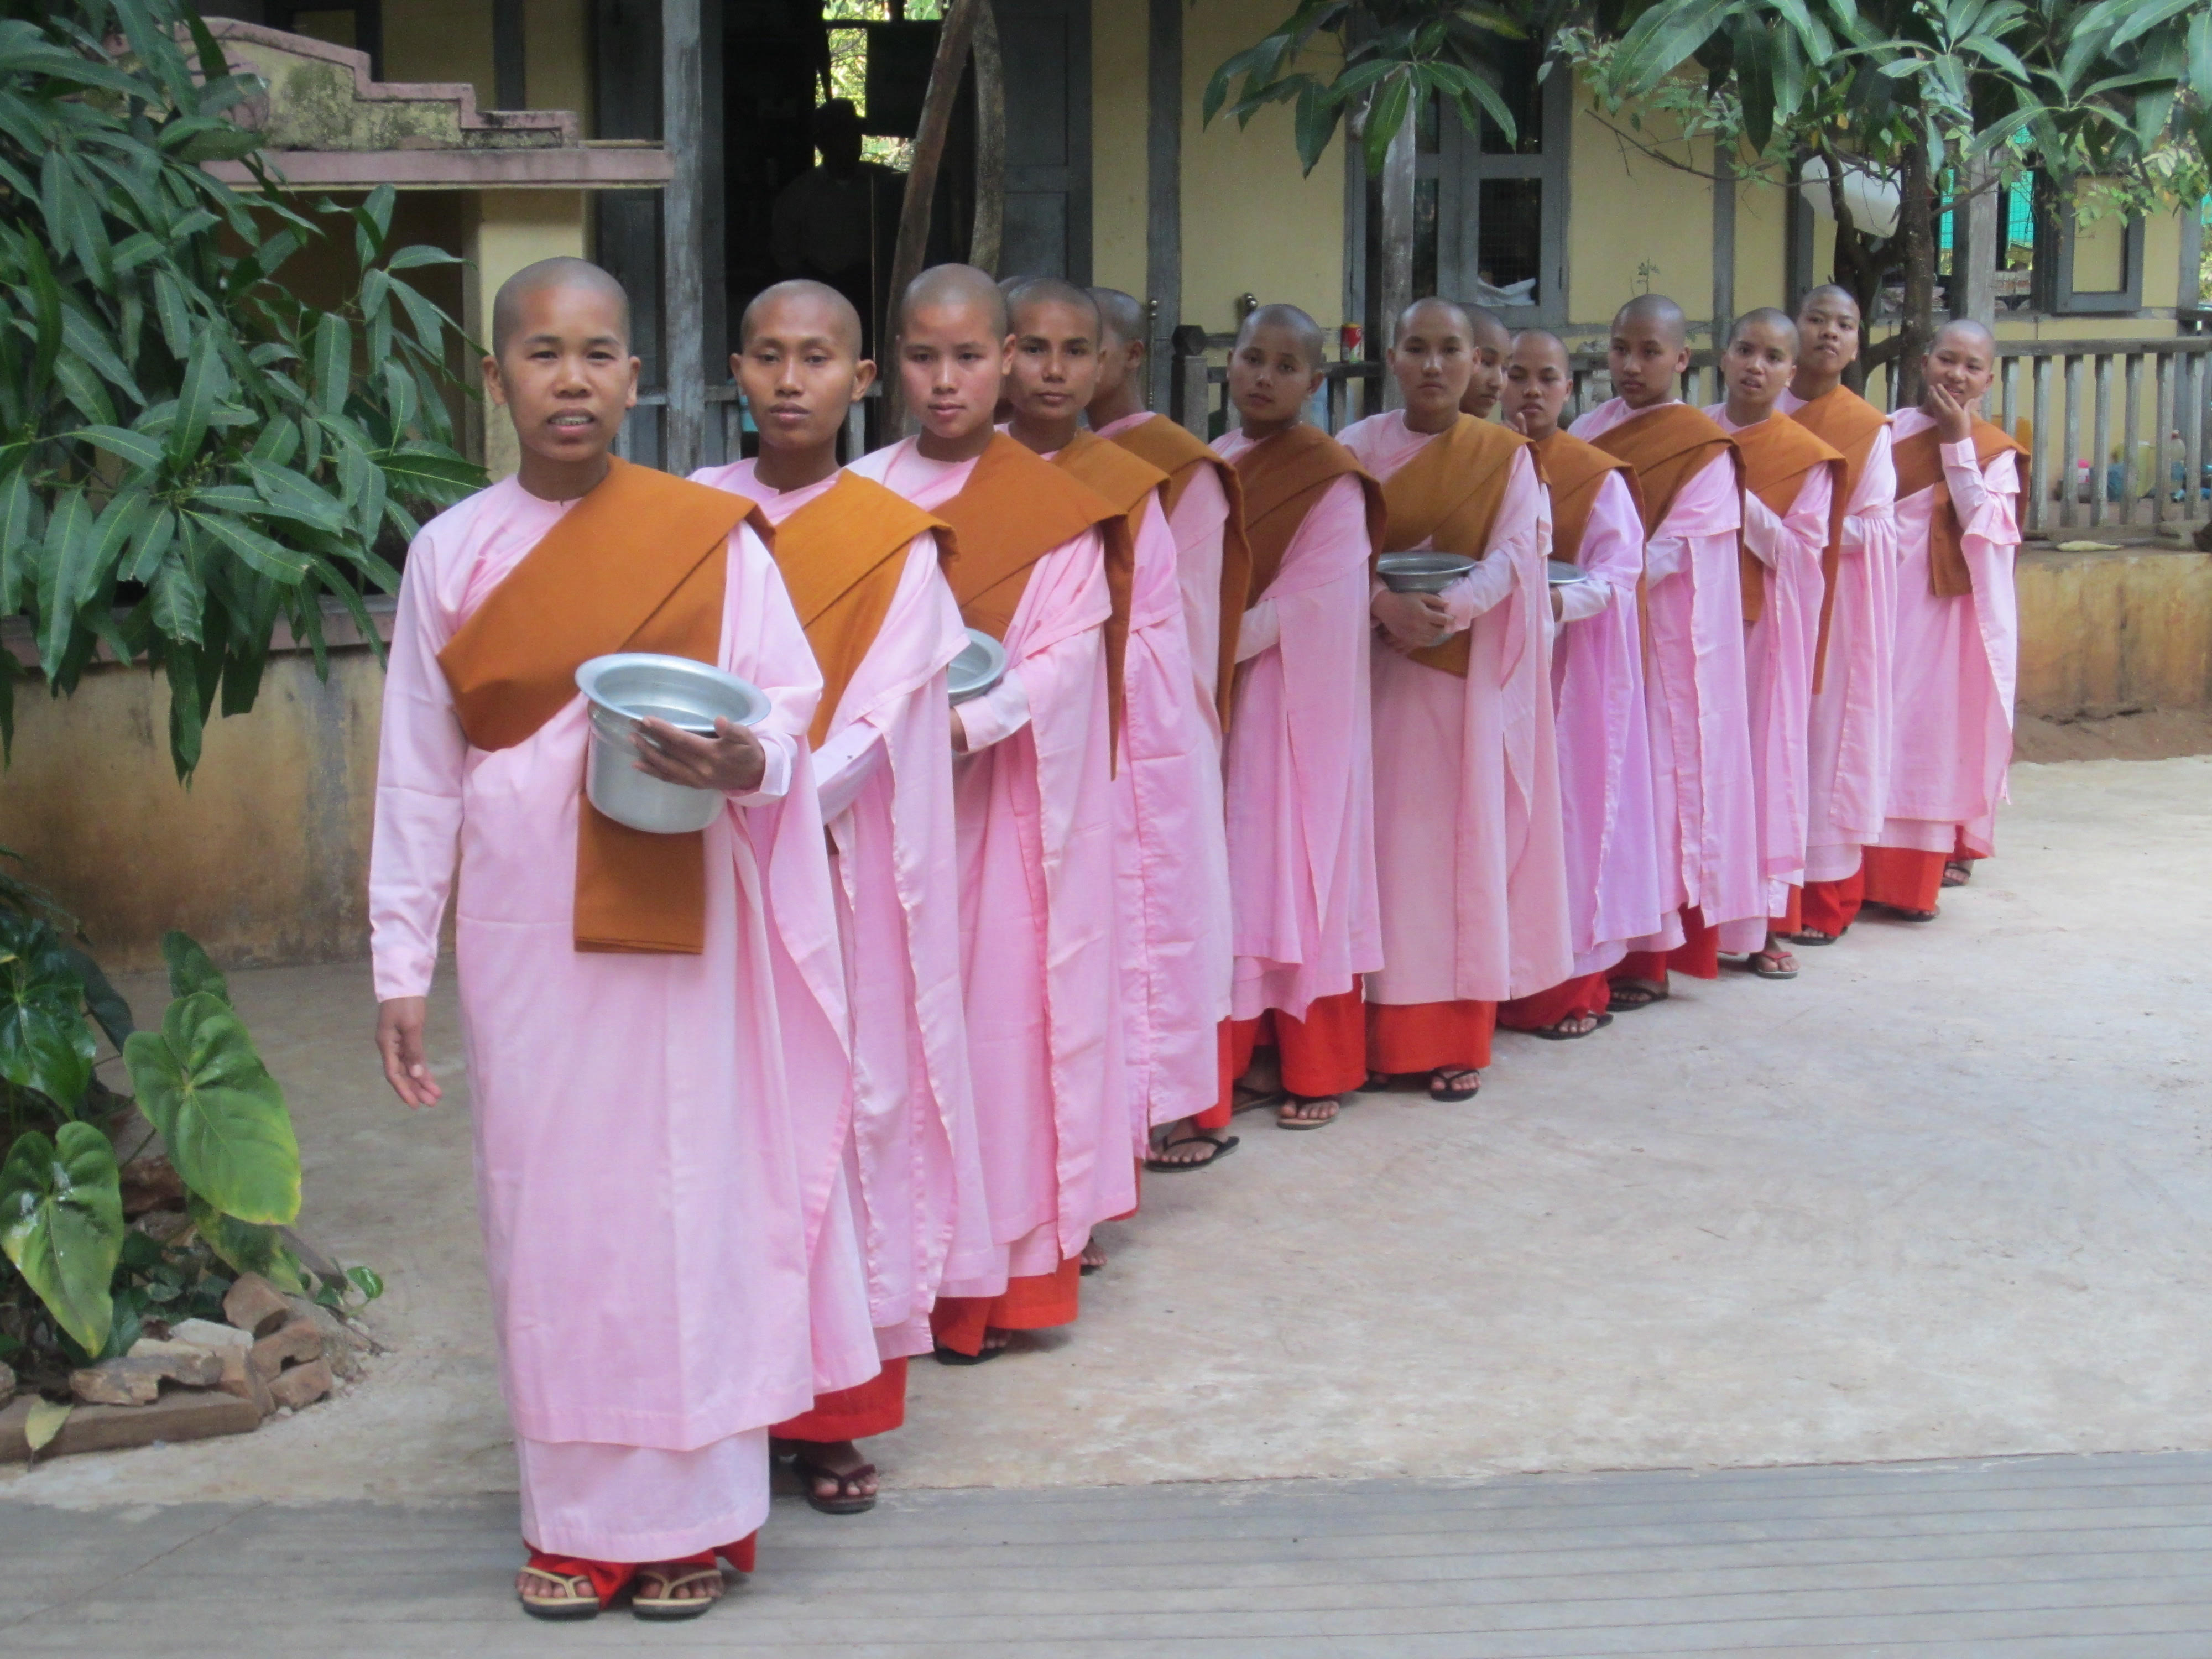 Nuns practice of daily alms